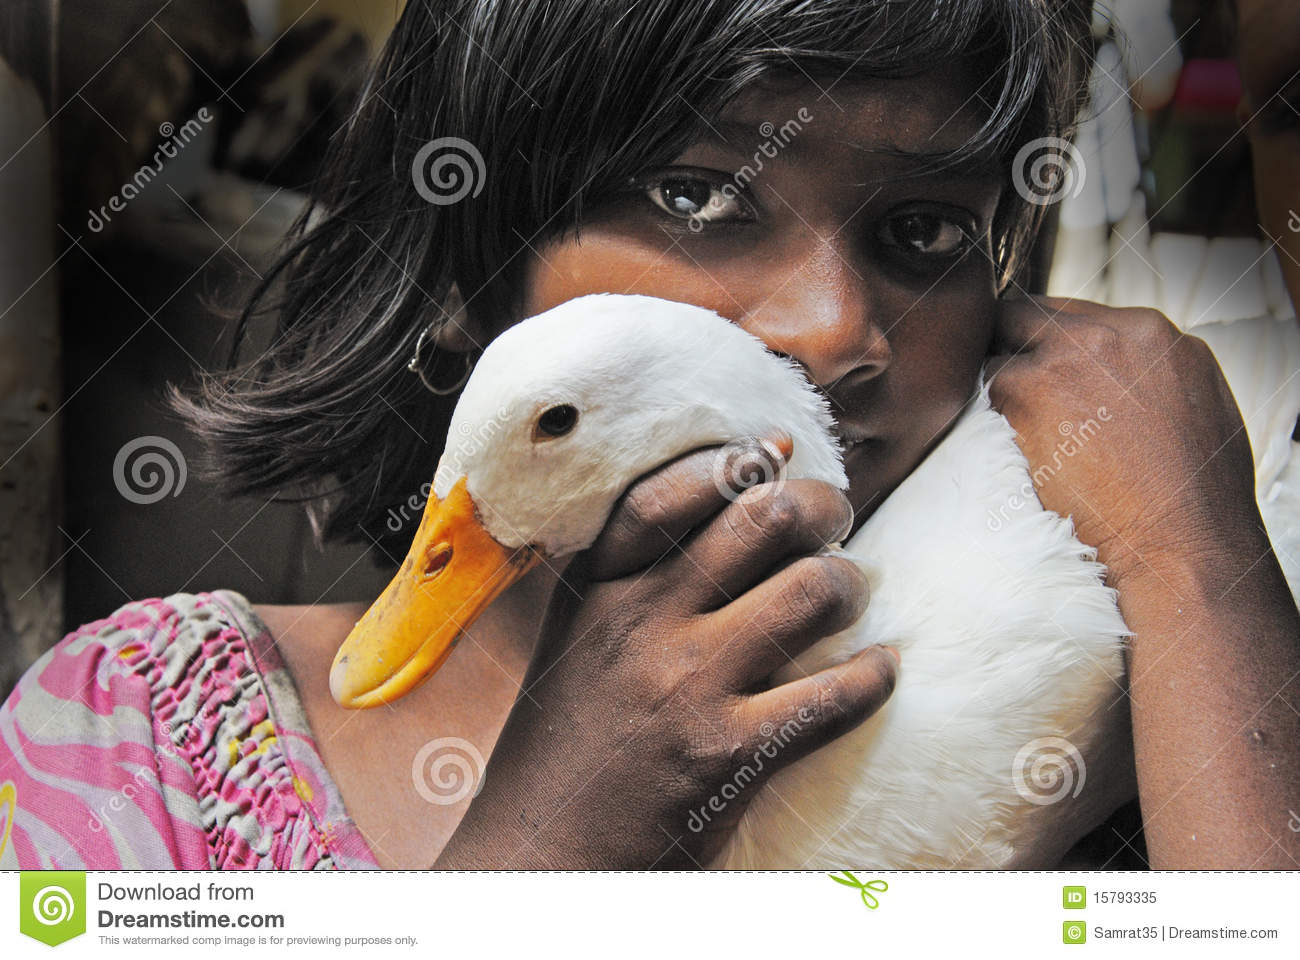 Adolescents girl in India.